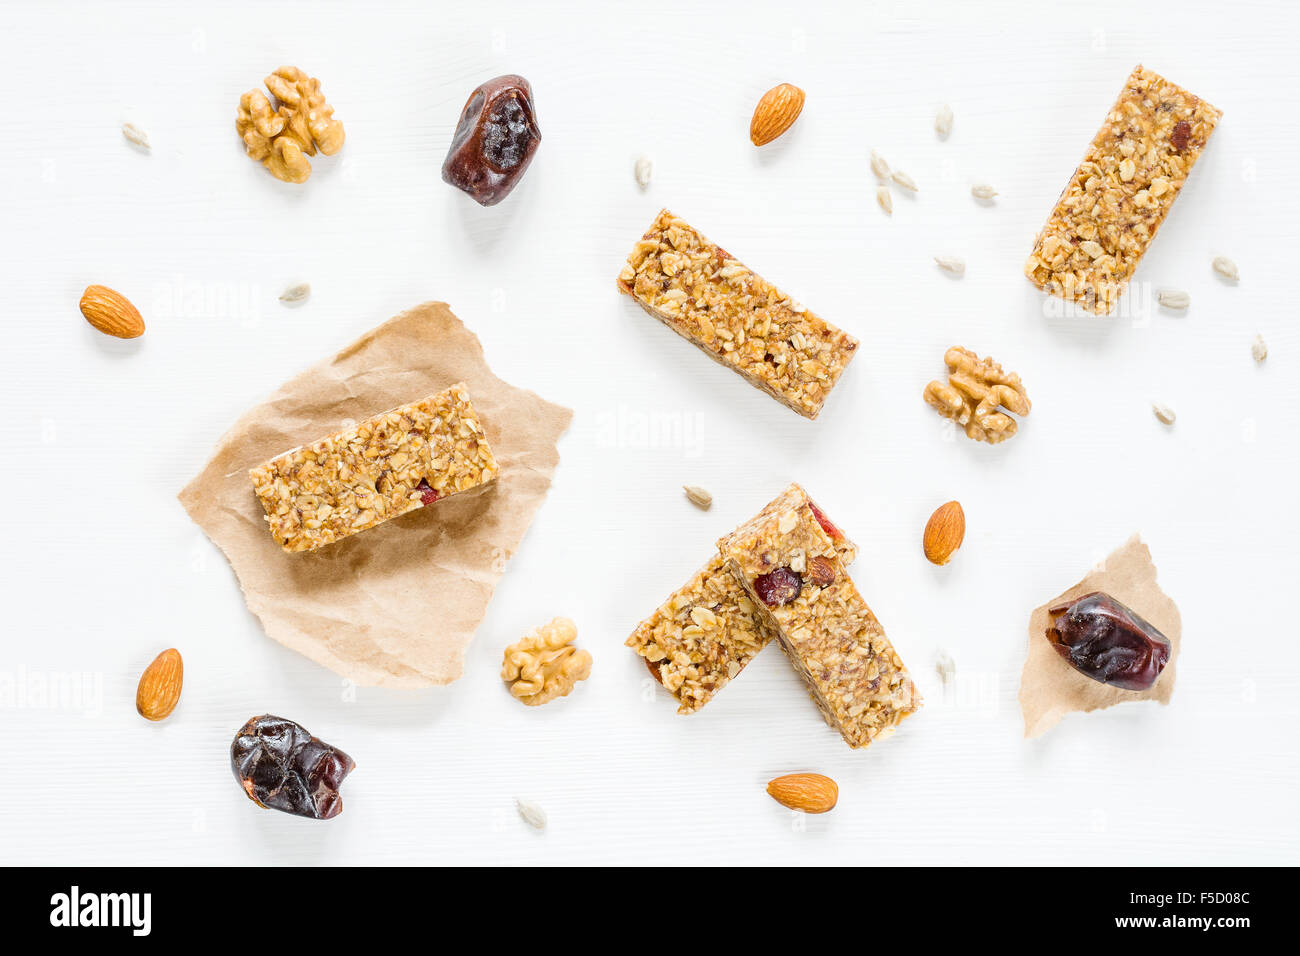 Granola Bar Or Energy Bar With Oats, Dates And Nuts On White Wooden  Background, Top View. Snack For Yoga, Fitness Or Sports